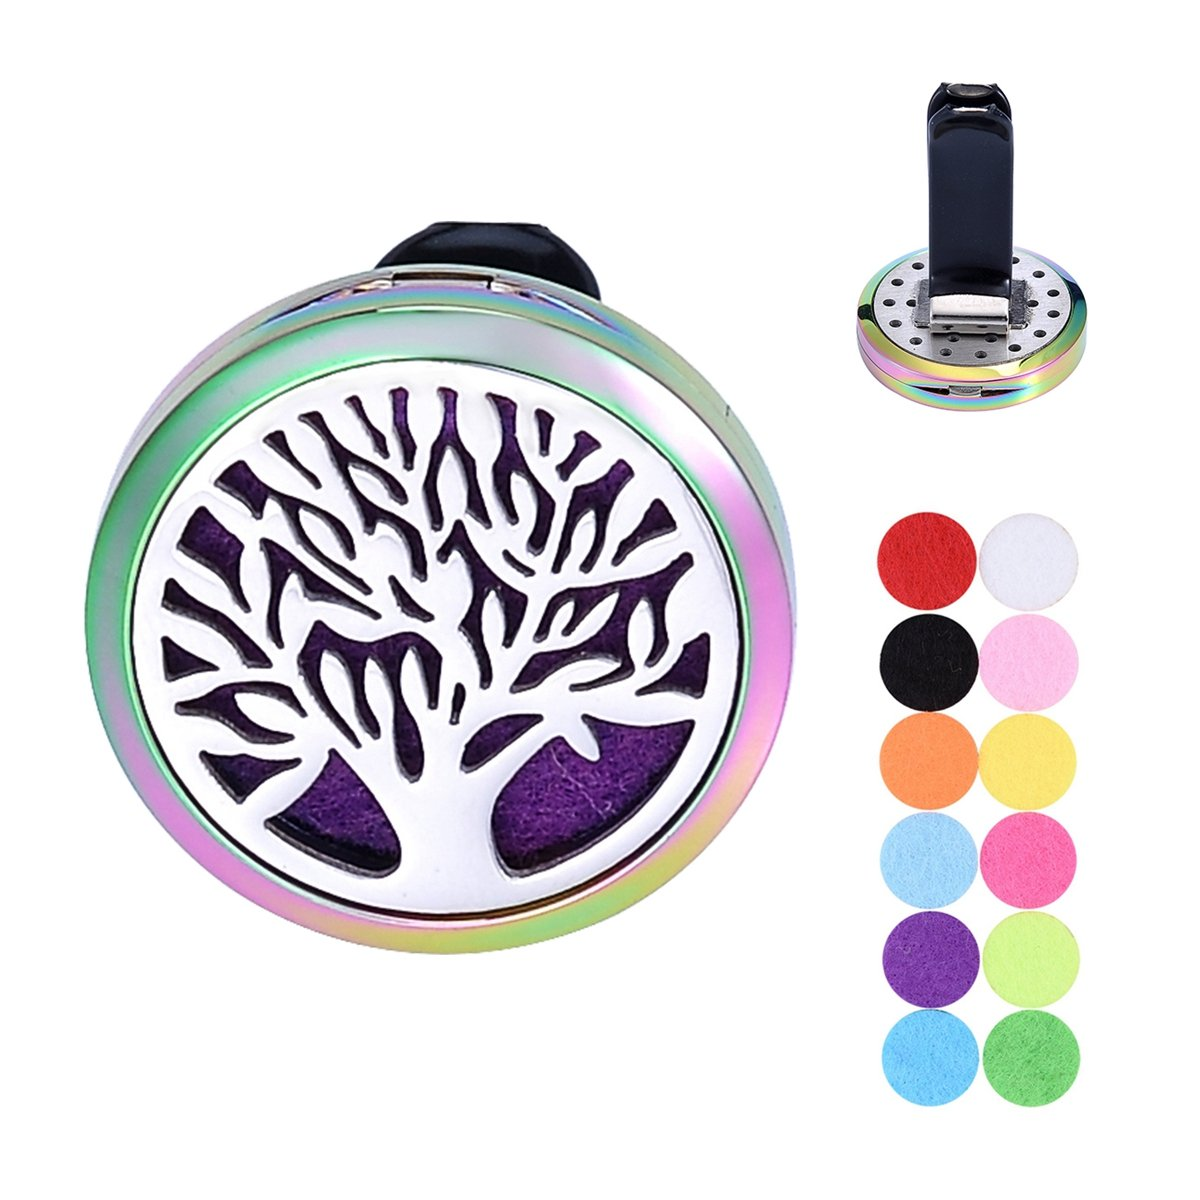 Car Air Freshener Aromatherapy Essential Oil Diffuser Vent Clip Stainless Steel Tree of Life Locket with 12 Washable Felt Pads Supreme glory SGto-B286841